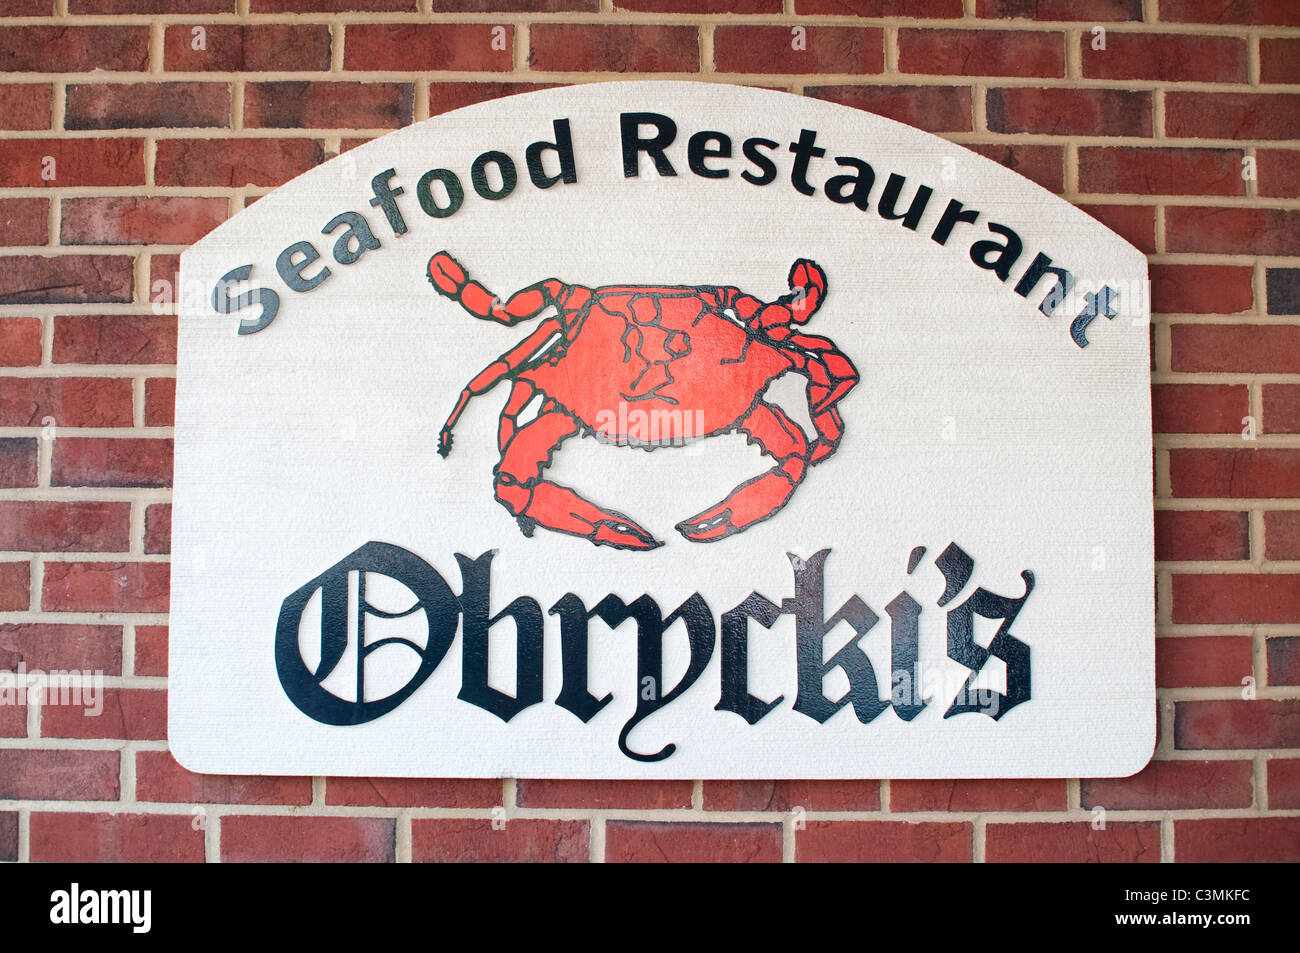 The Sign For Famous Obrycki S Seafood Restaurant In